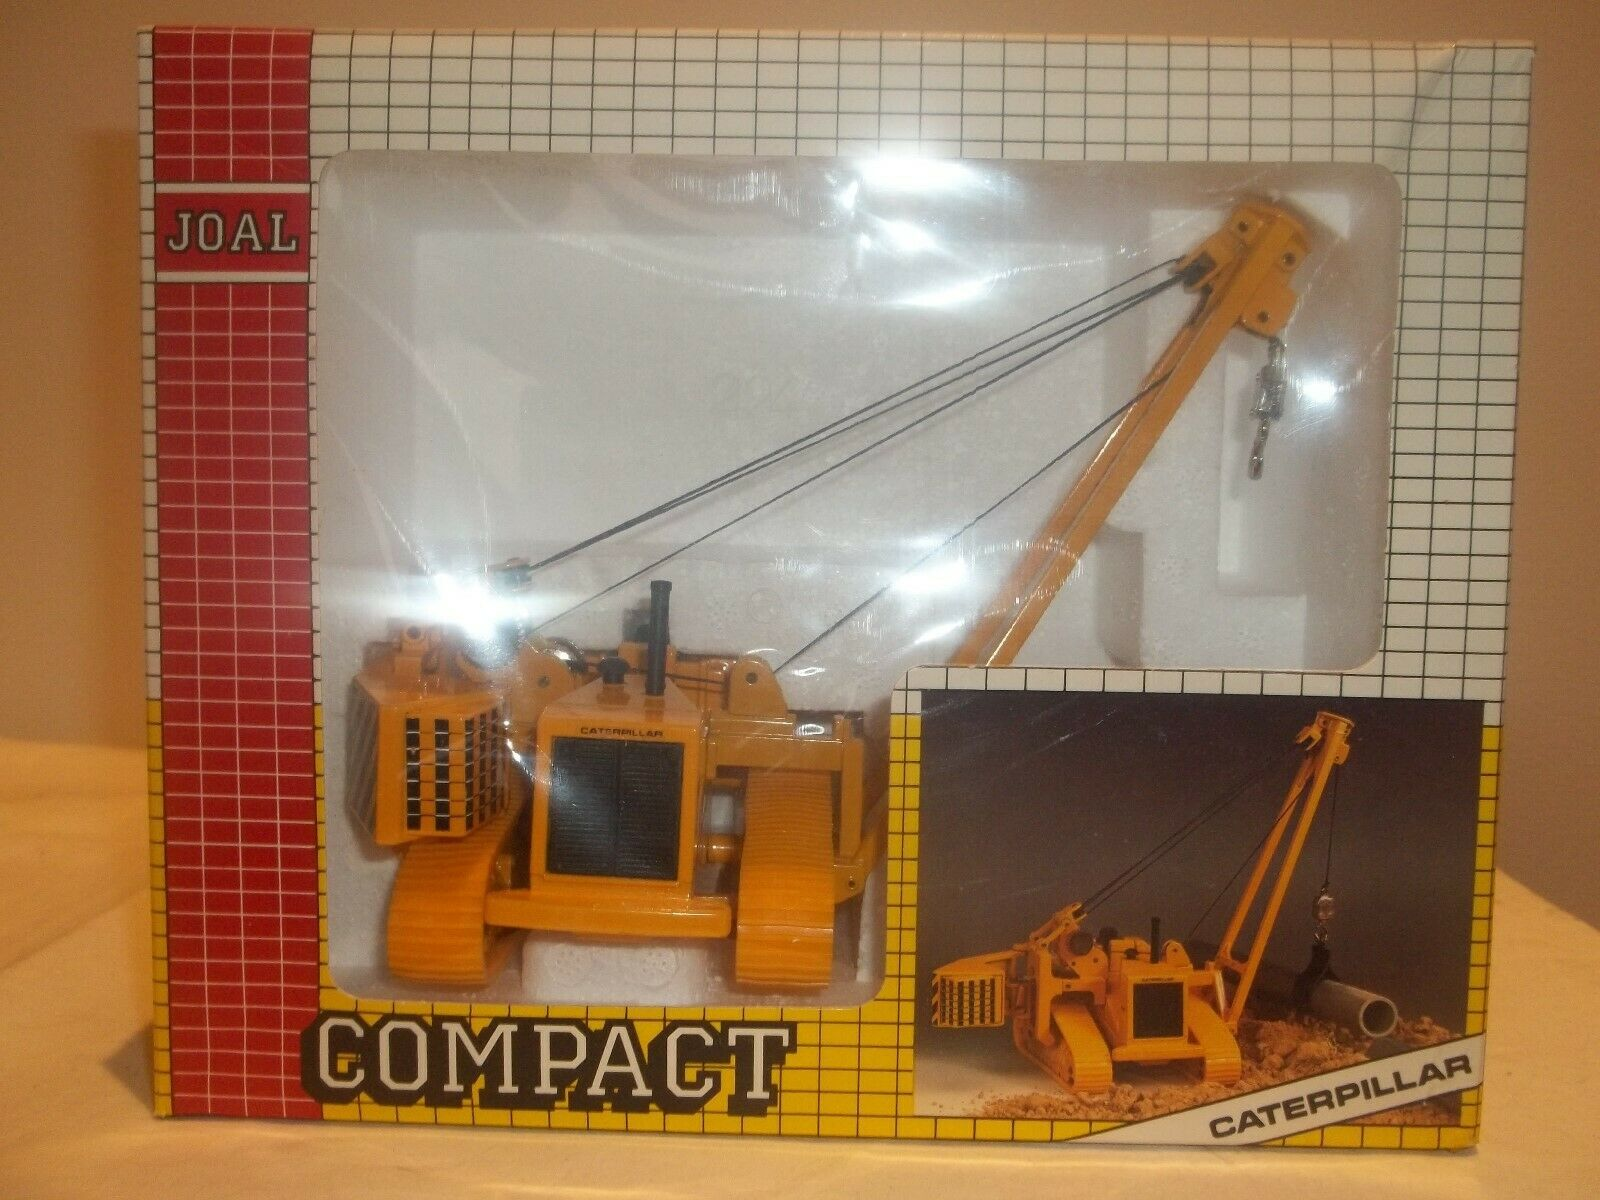 Joal Compact 224 Caterpillar Pipelayer C-591 1 70 Mint & Boxed